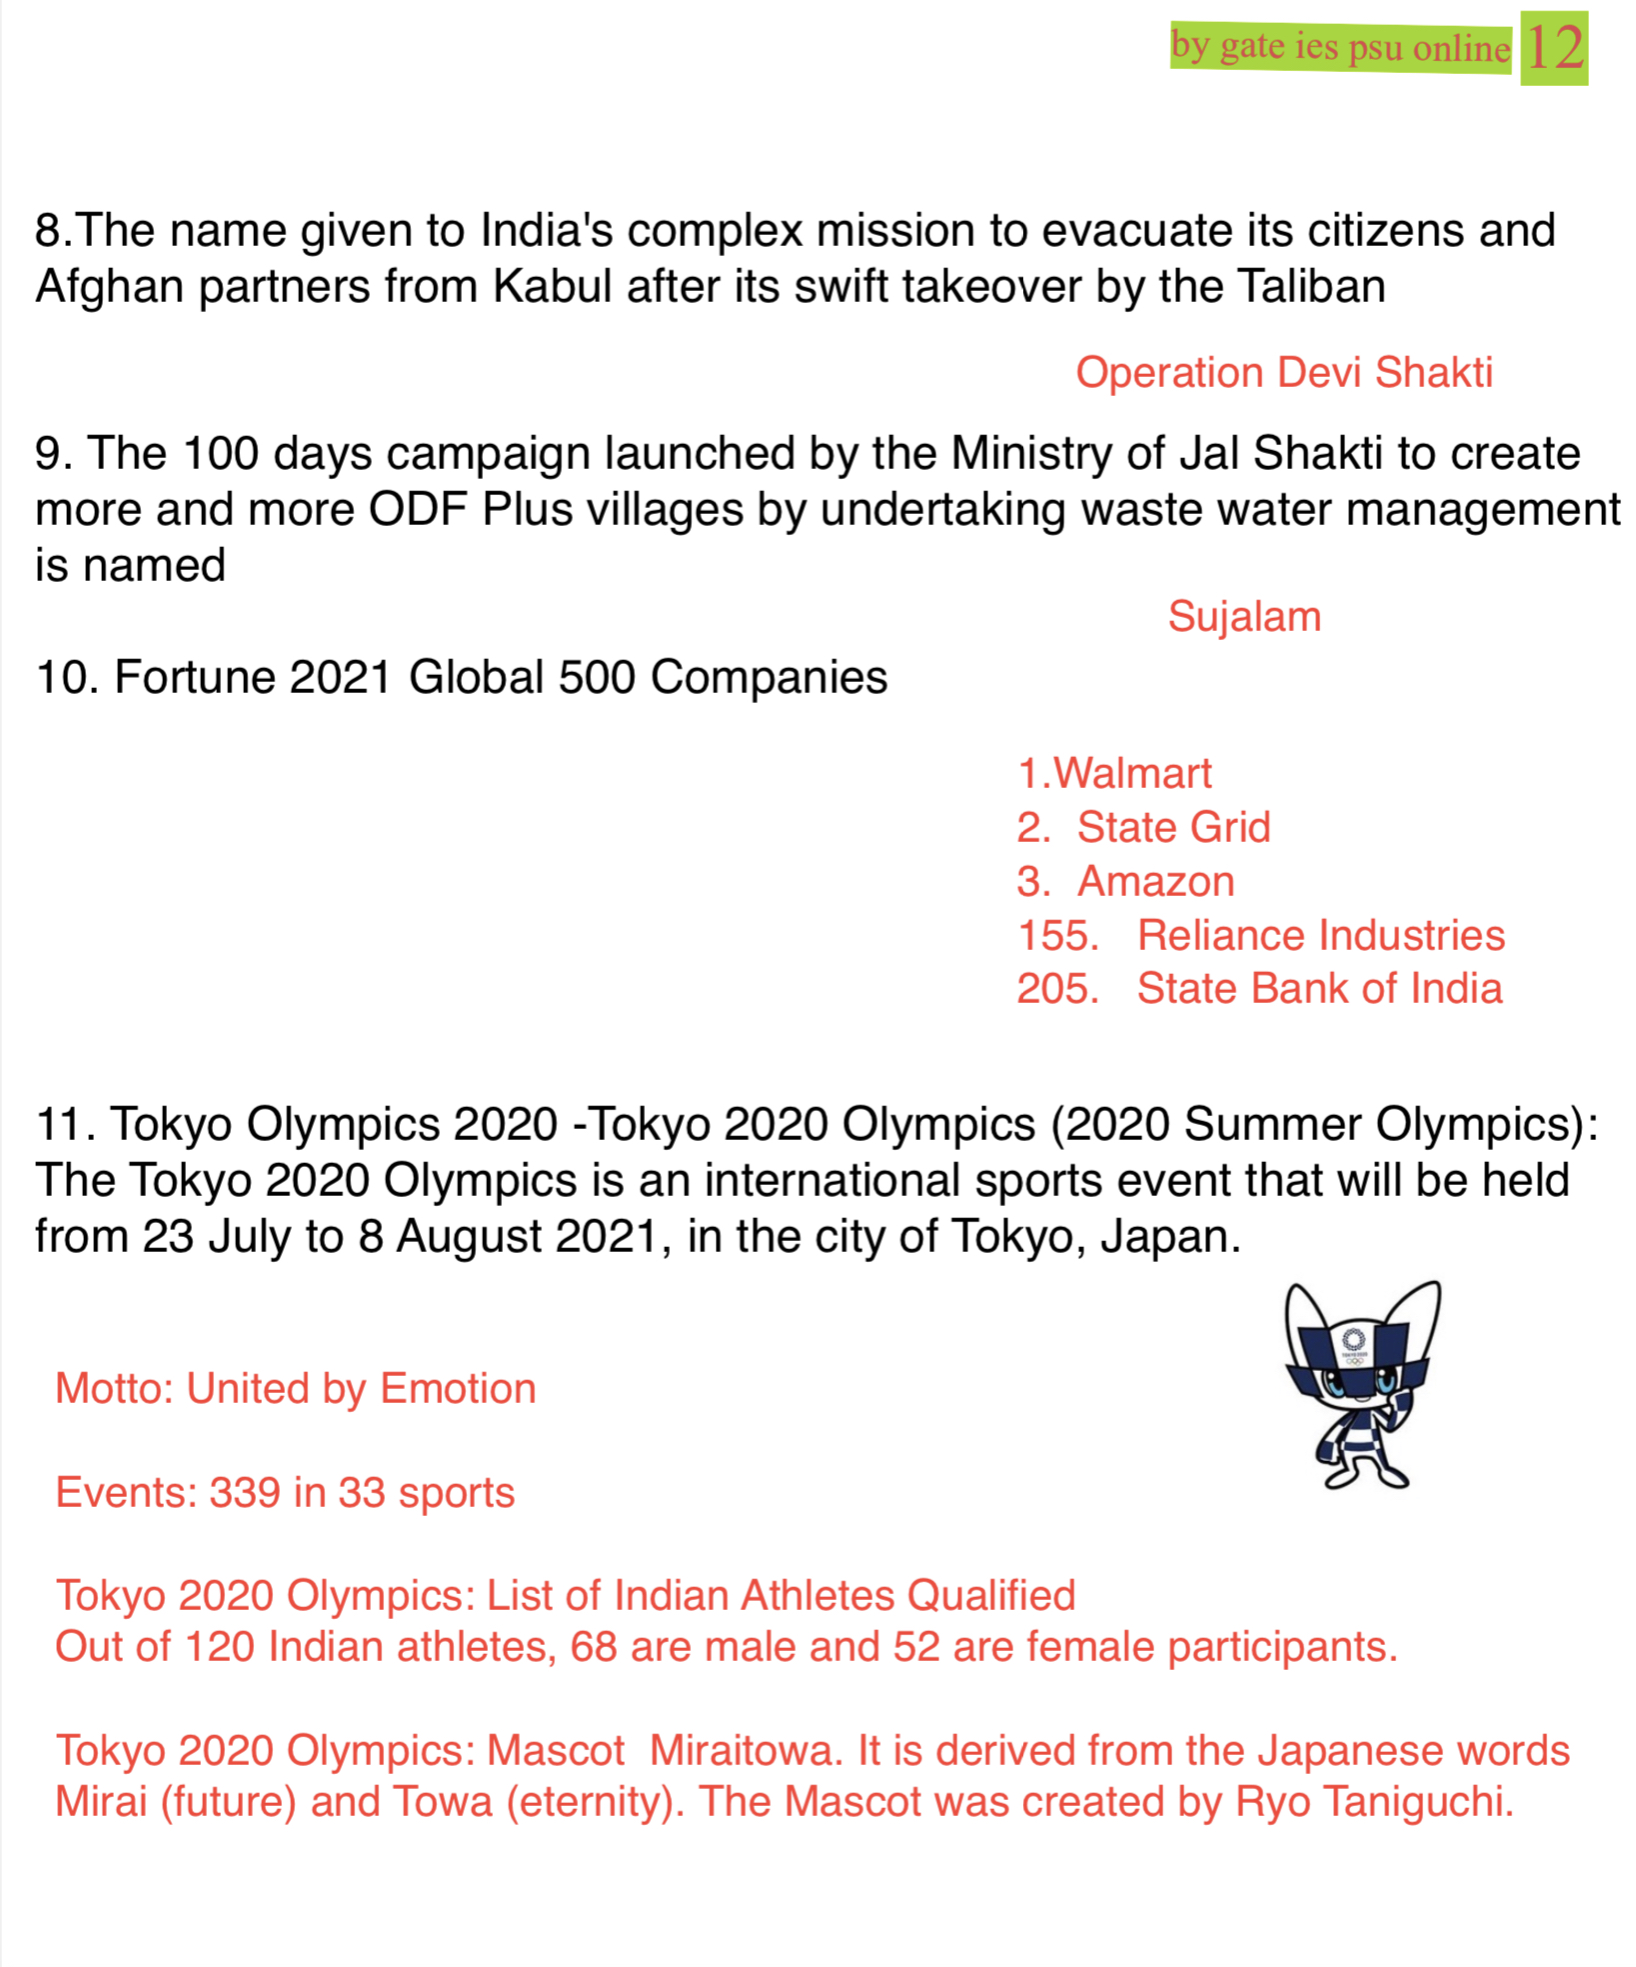 olympic 2020 tokyo upsc current affairs